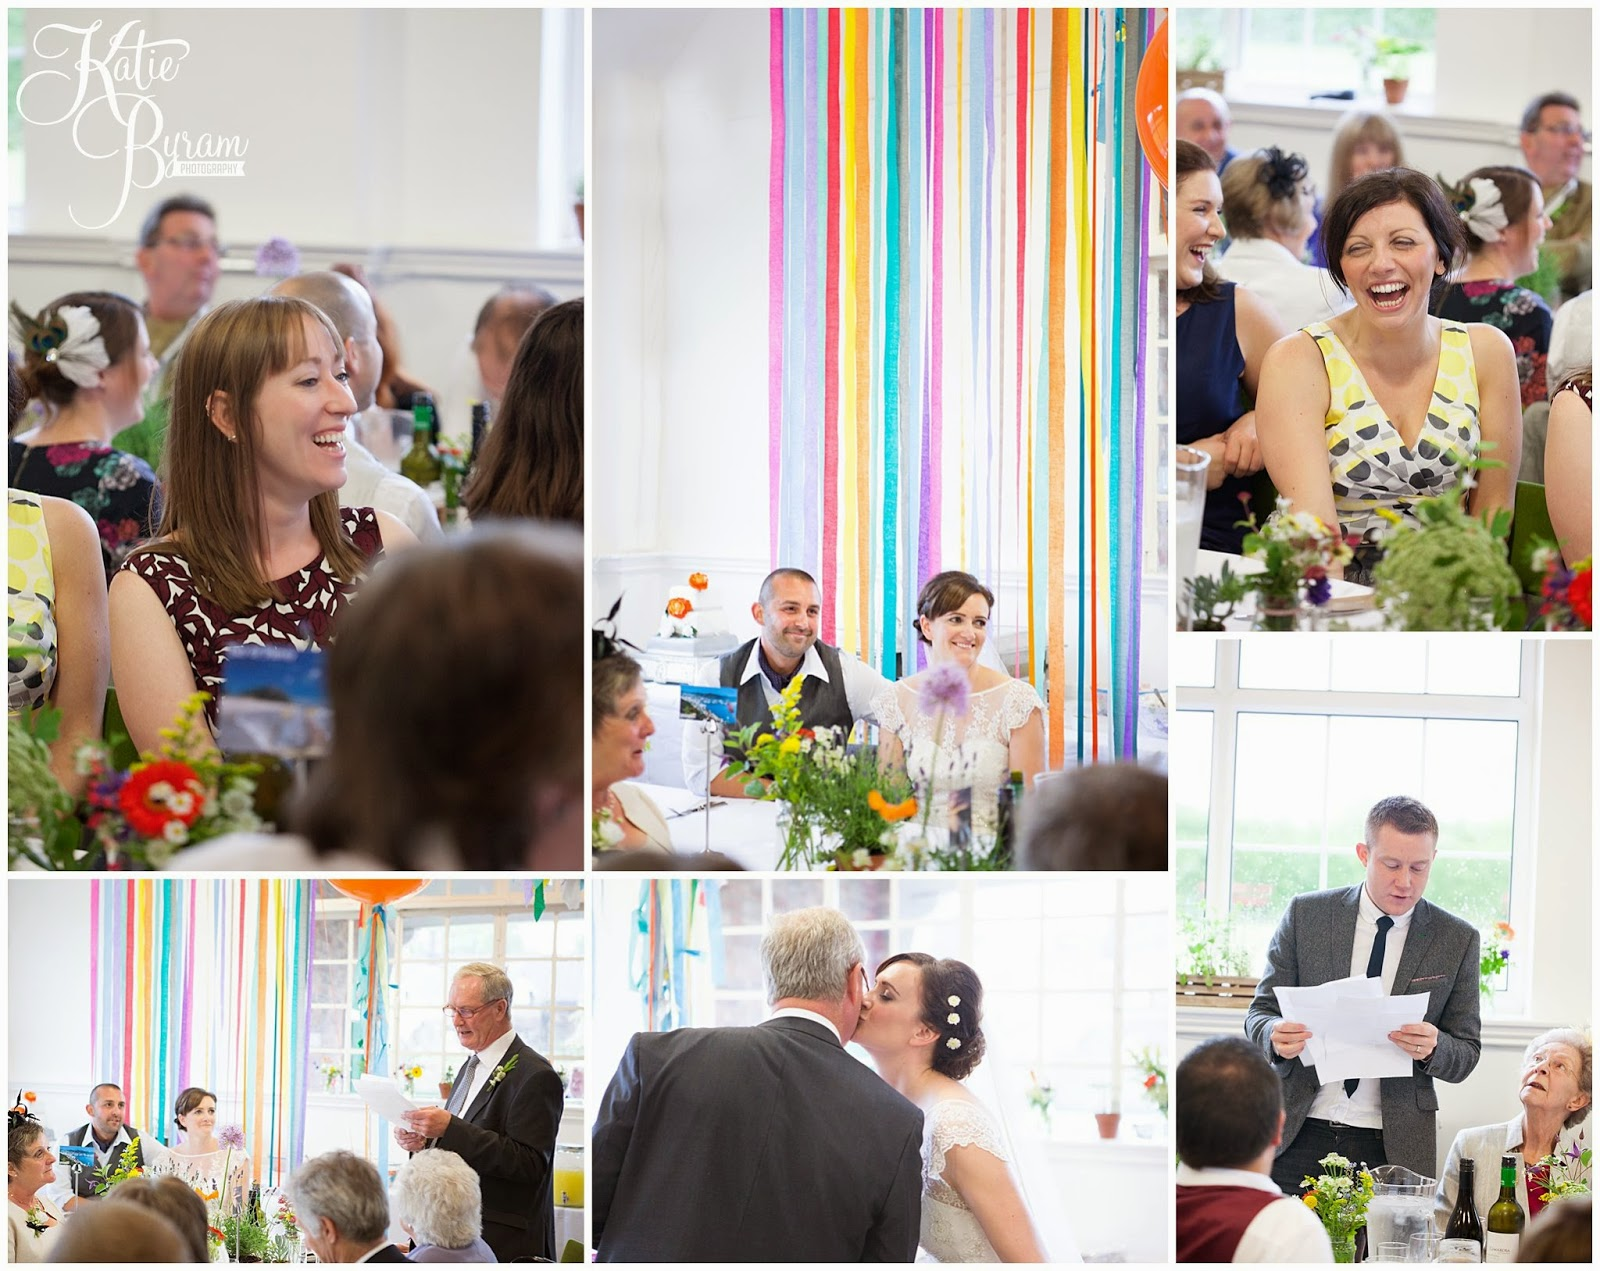 wedding speeches, summerhill bowling green, quayside wedding, newcastle wedding, no ordinary florist, vintage wedding, diy wedding, katie byram photography